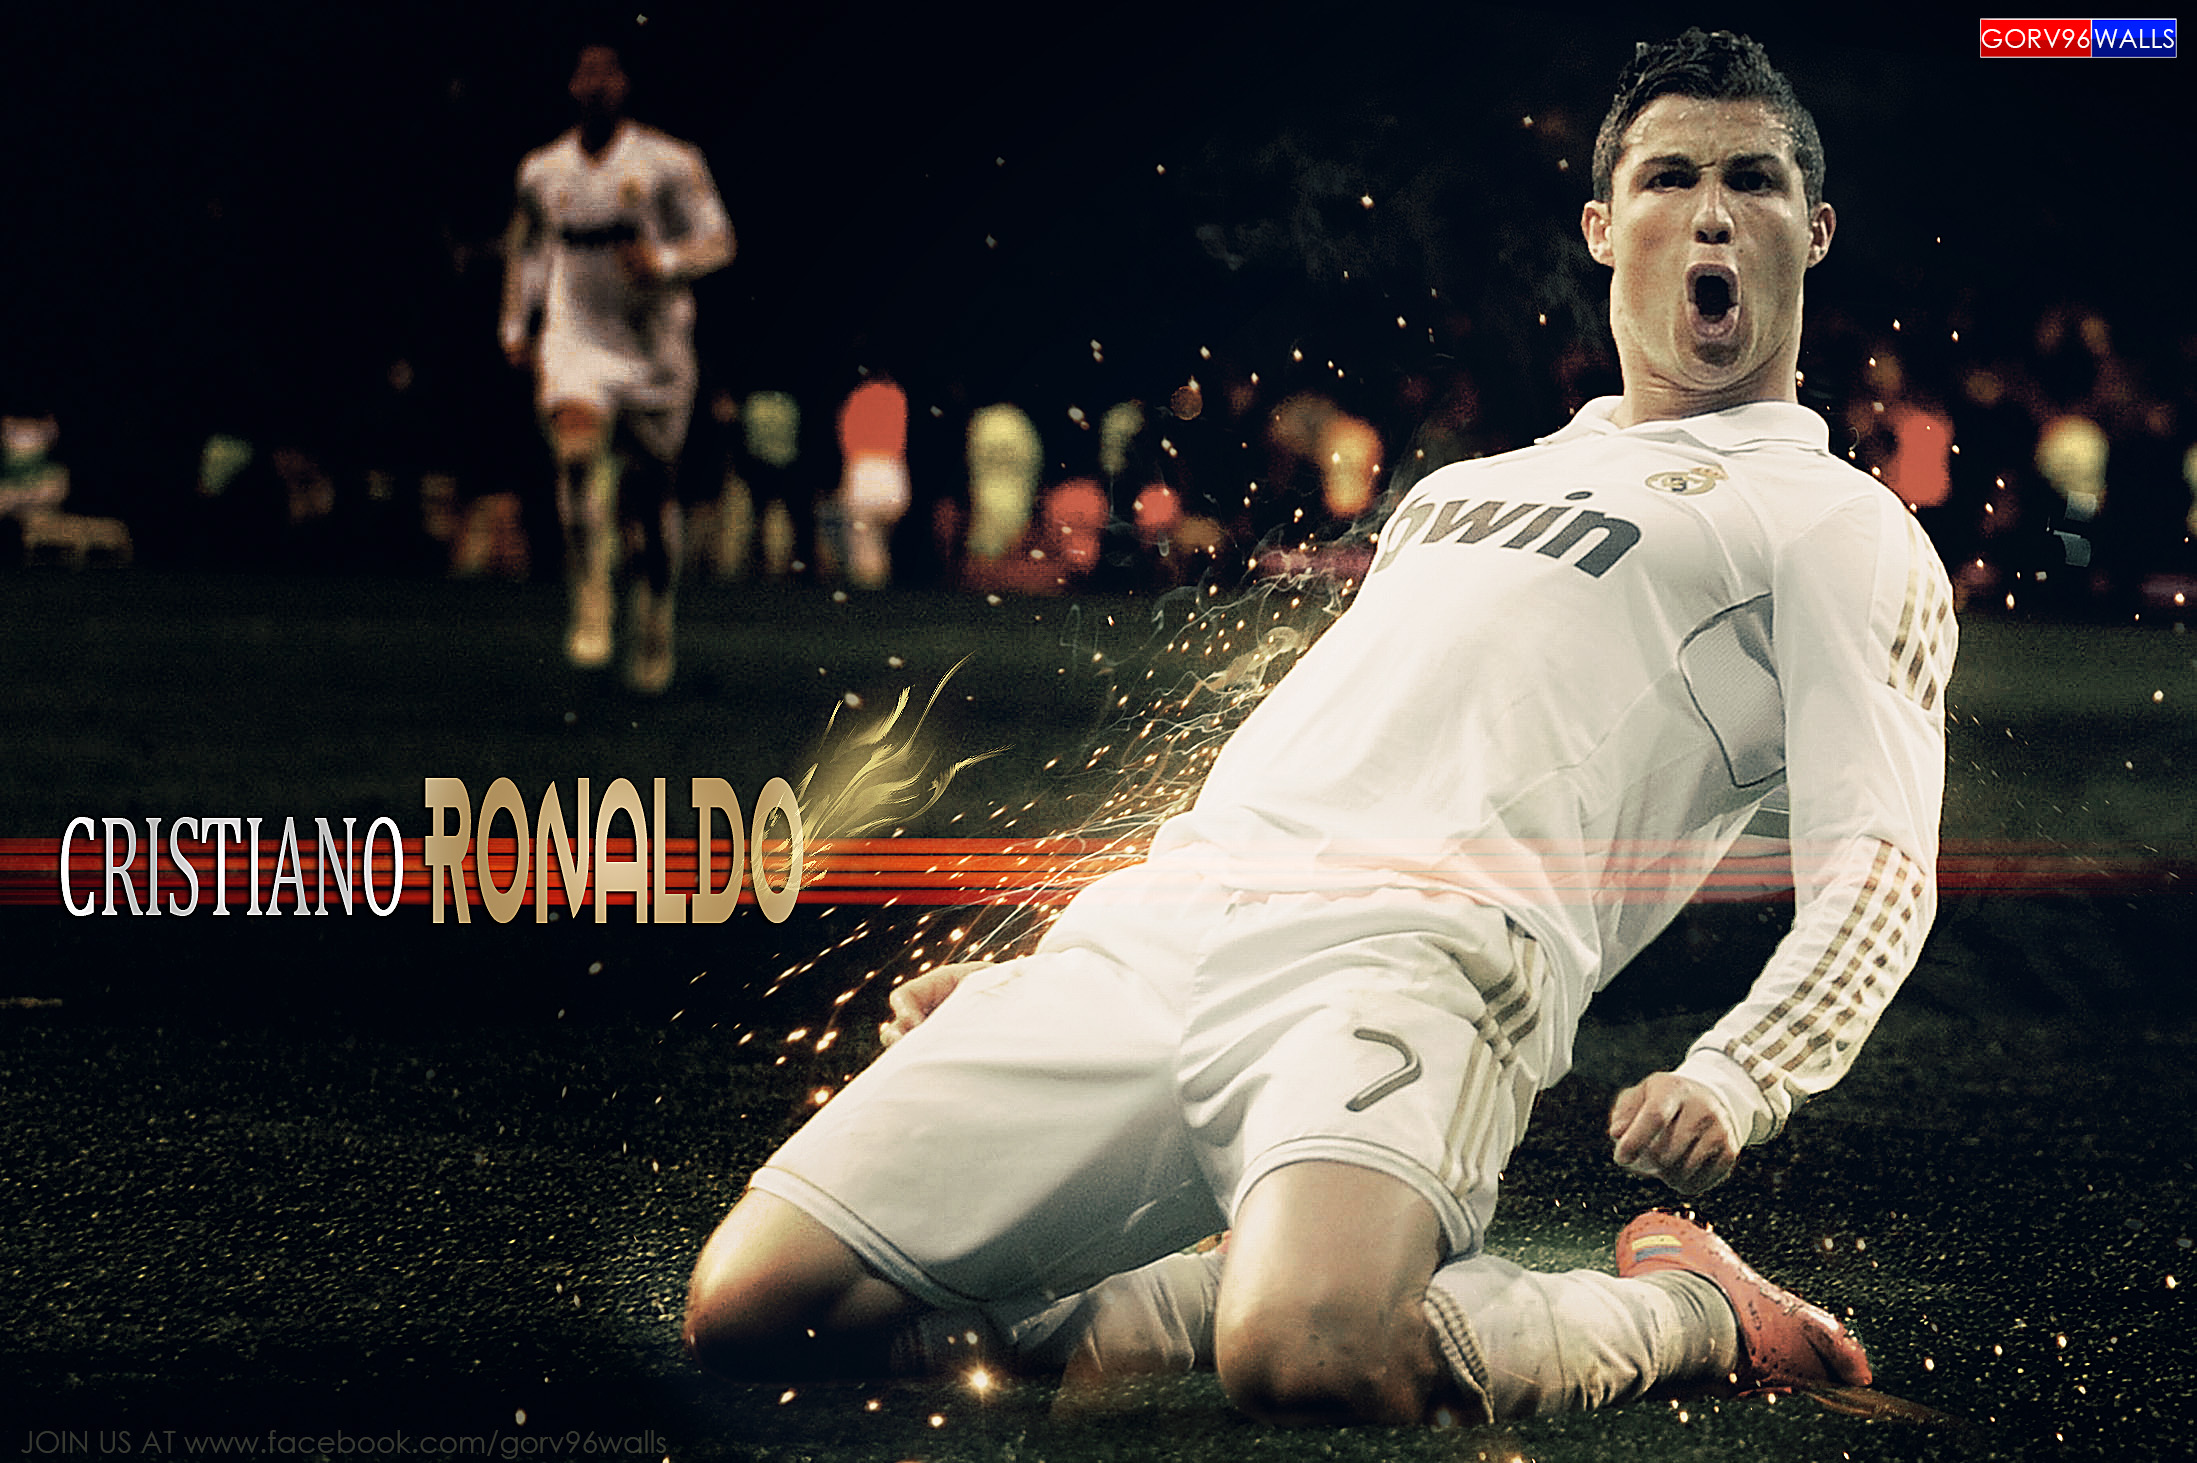 Wallpaper 3d C Ronaldo Cristiano Ronaldo Hd By Gorv96walls Full Hd Sfondo And